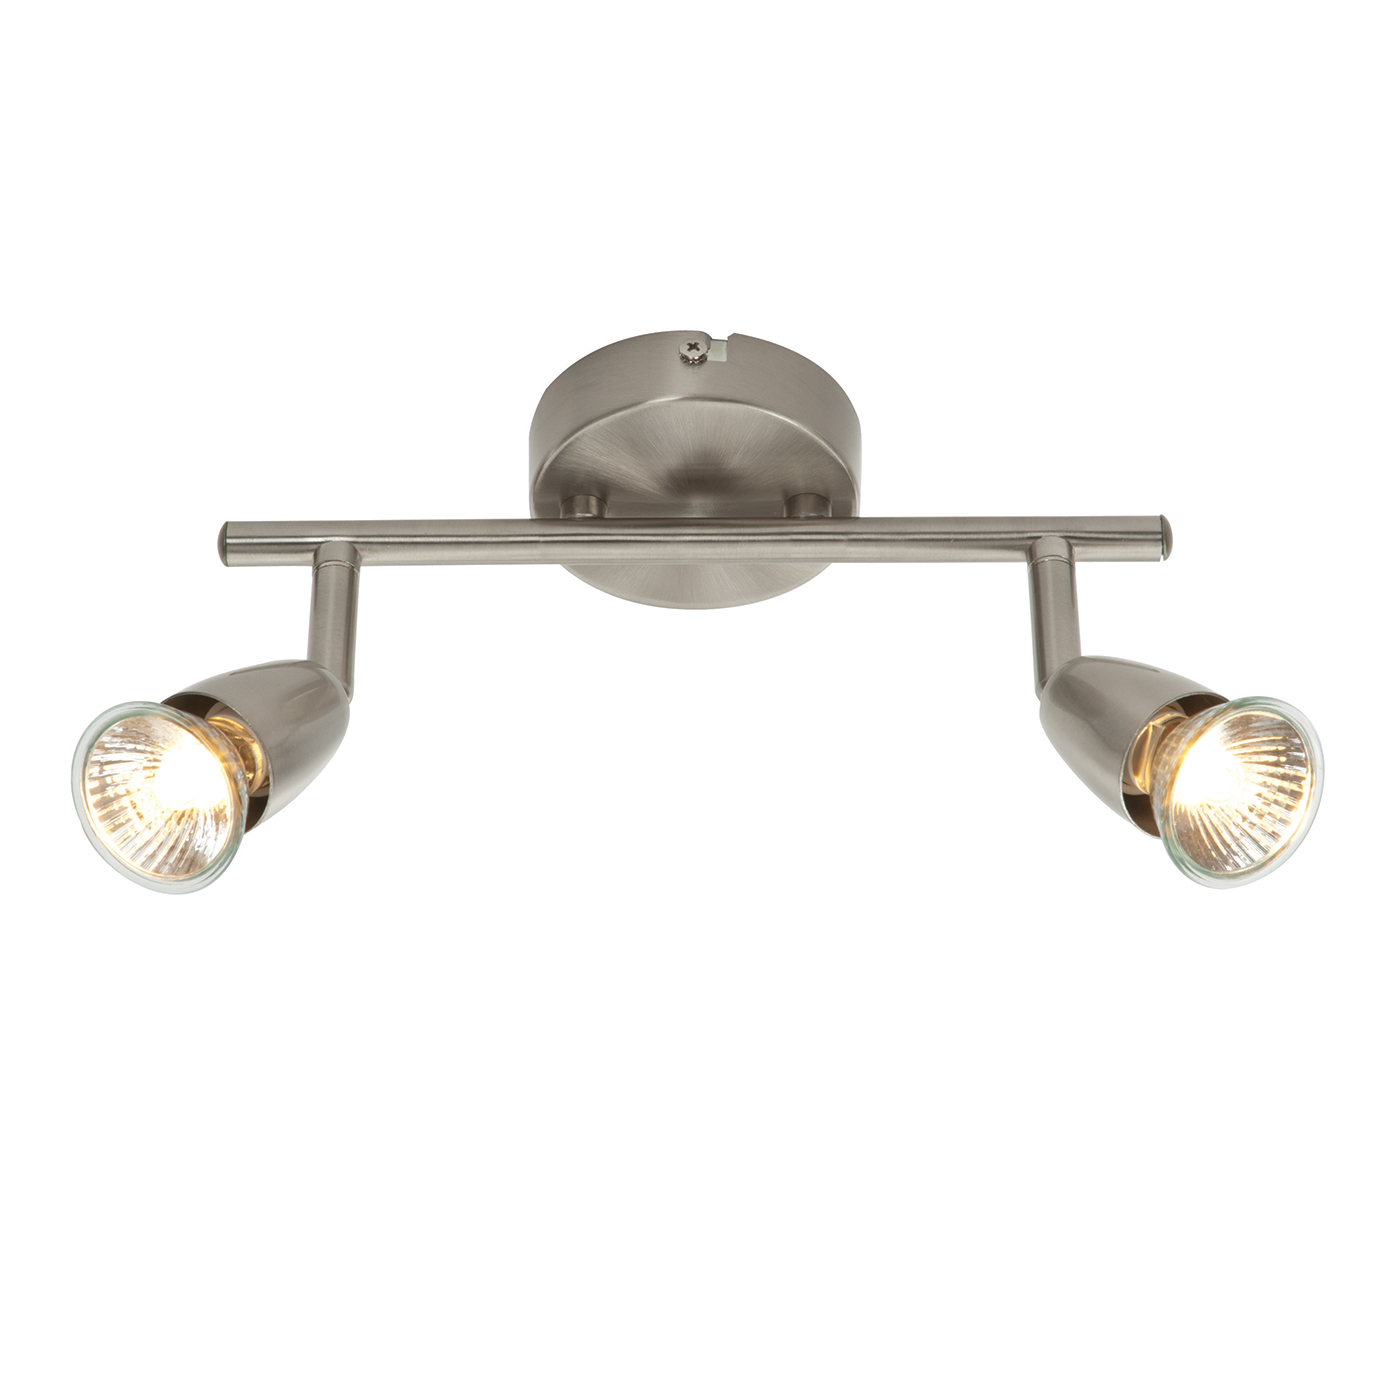 Endon Amalfi ceiling spotlight bar 2x 50W Satin nickel effect plate